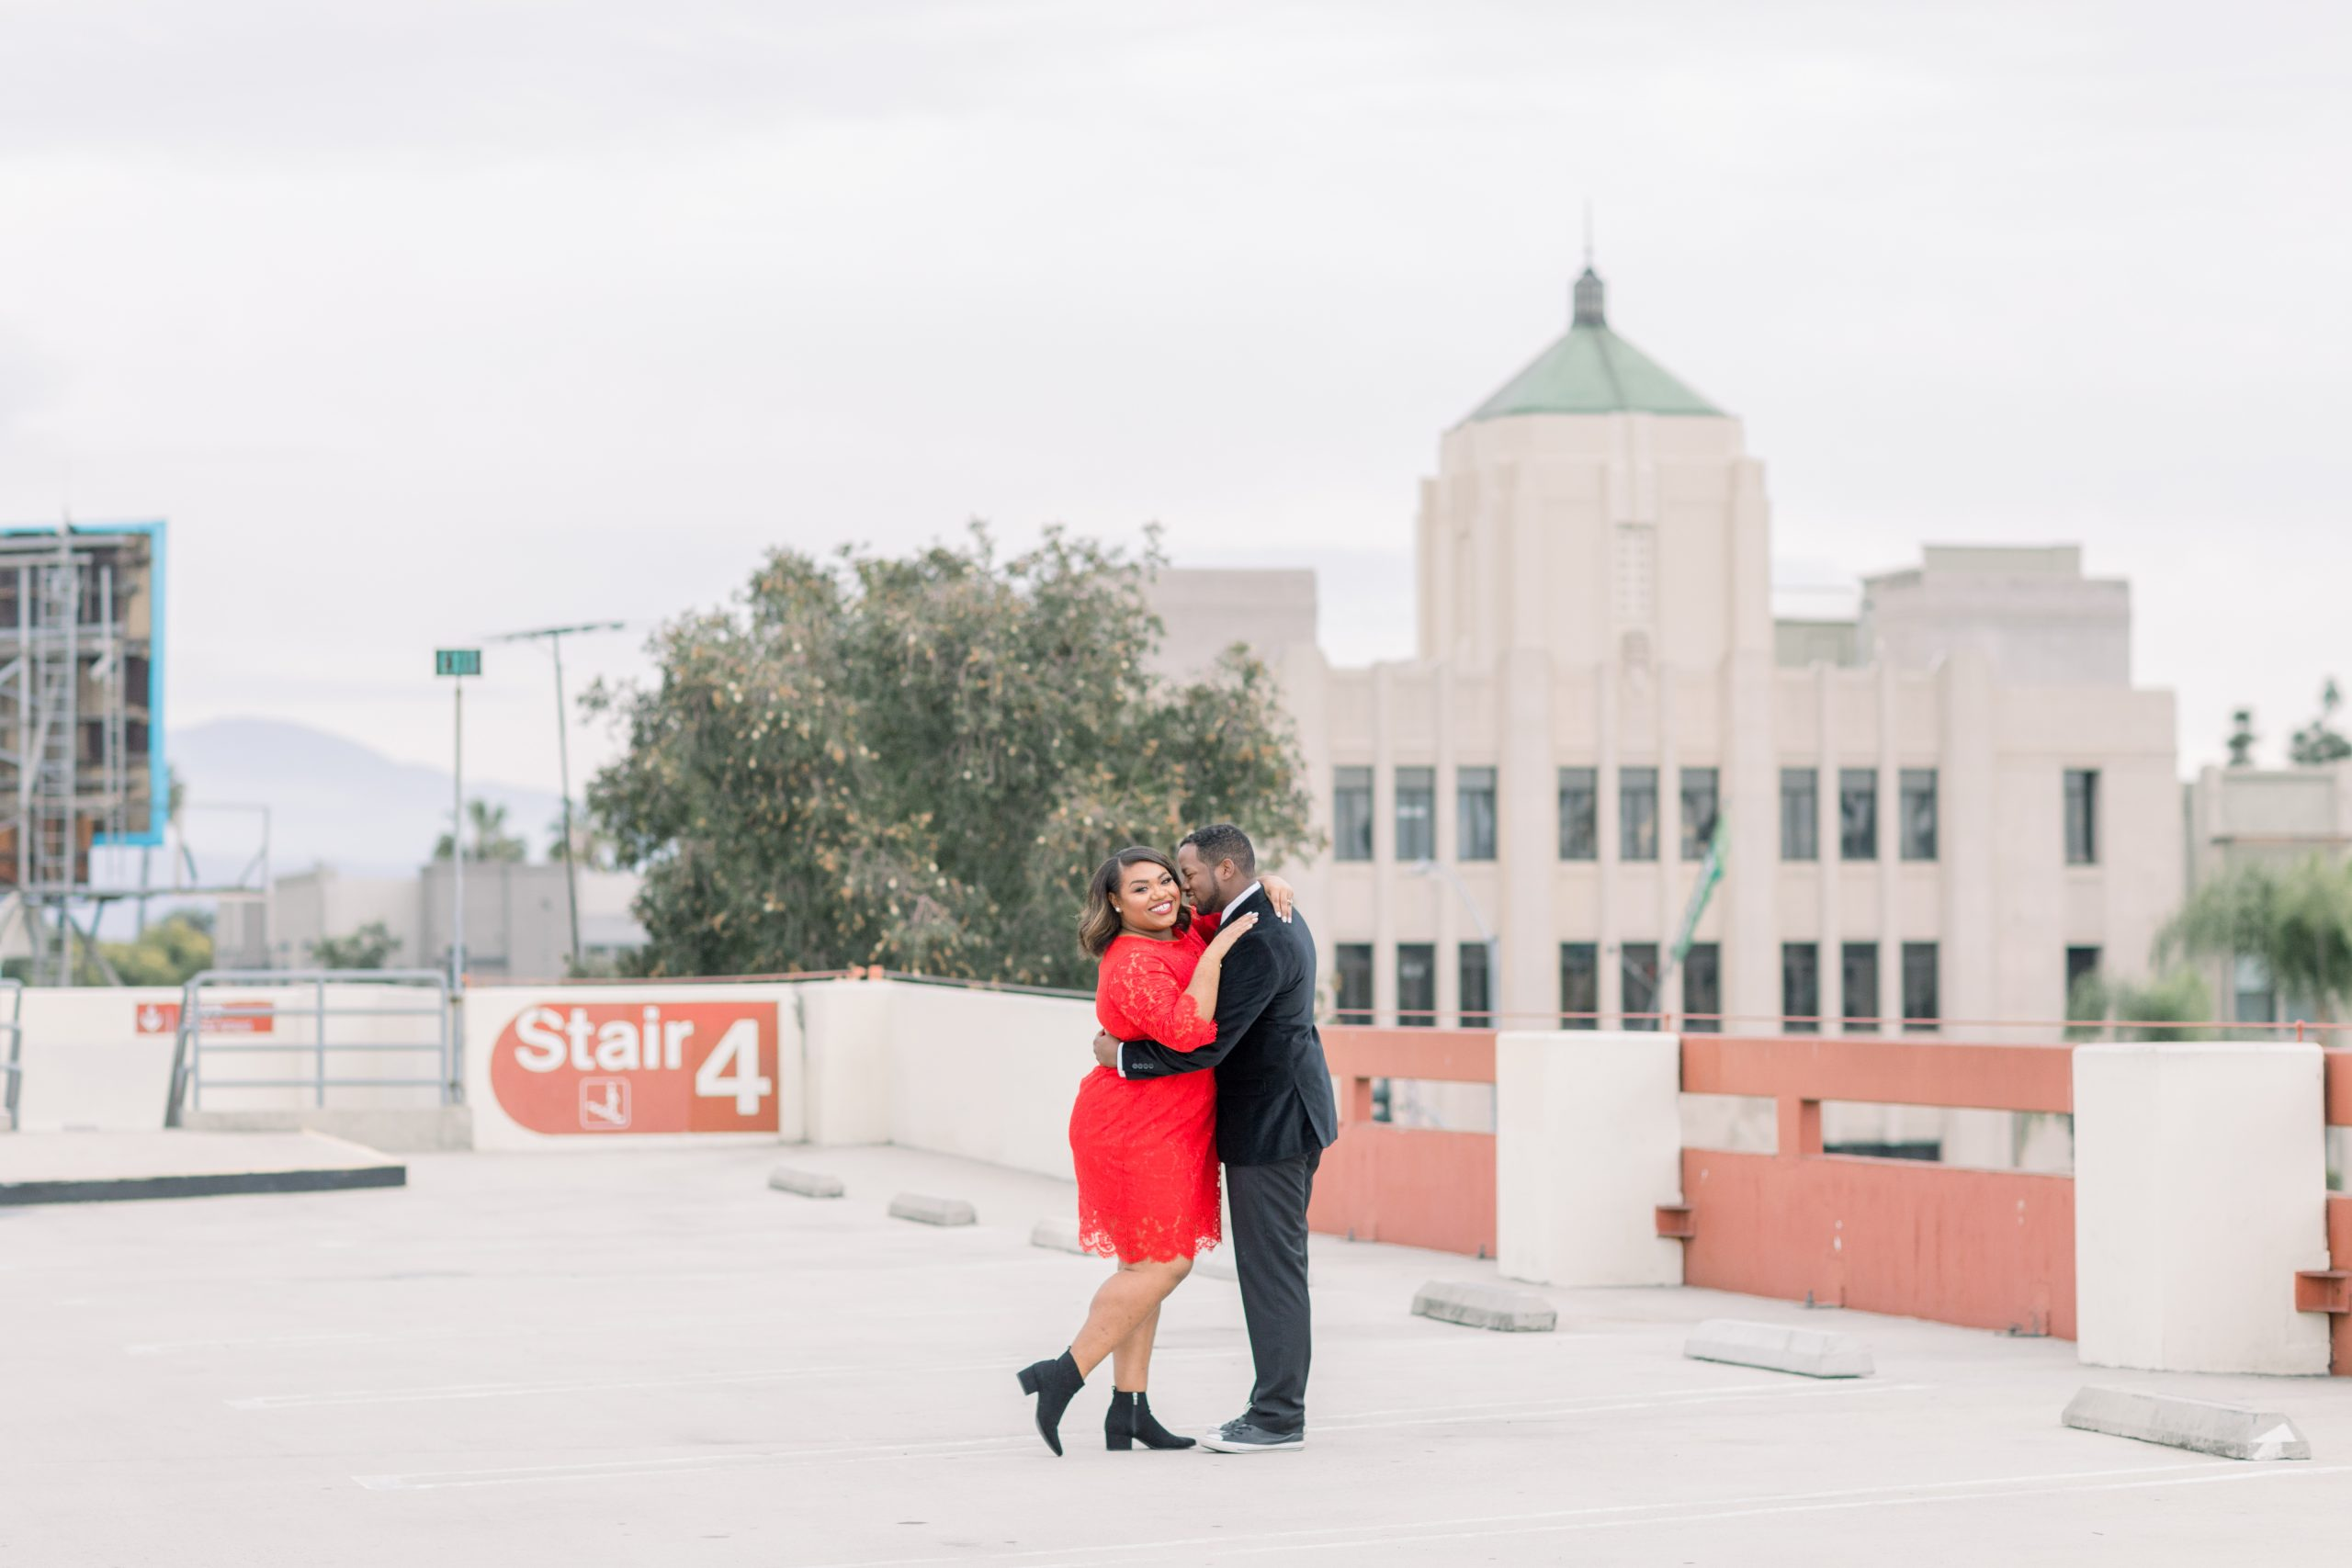 Rooftop Engagement Session - Stephanieweberphotgraphy.com